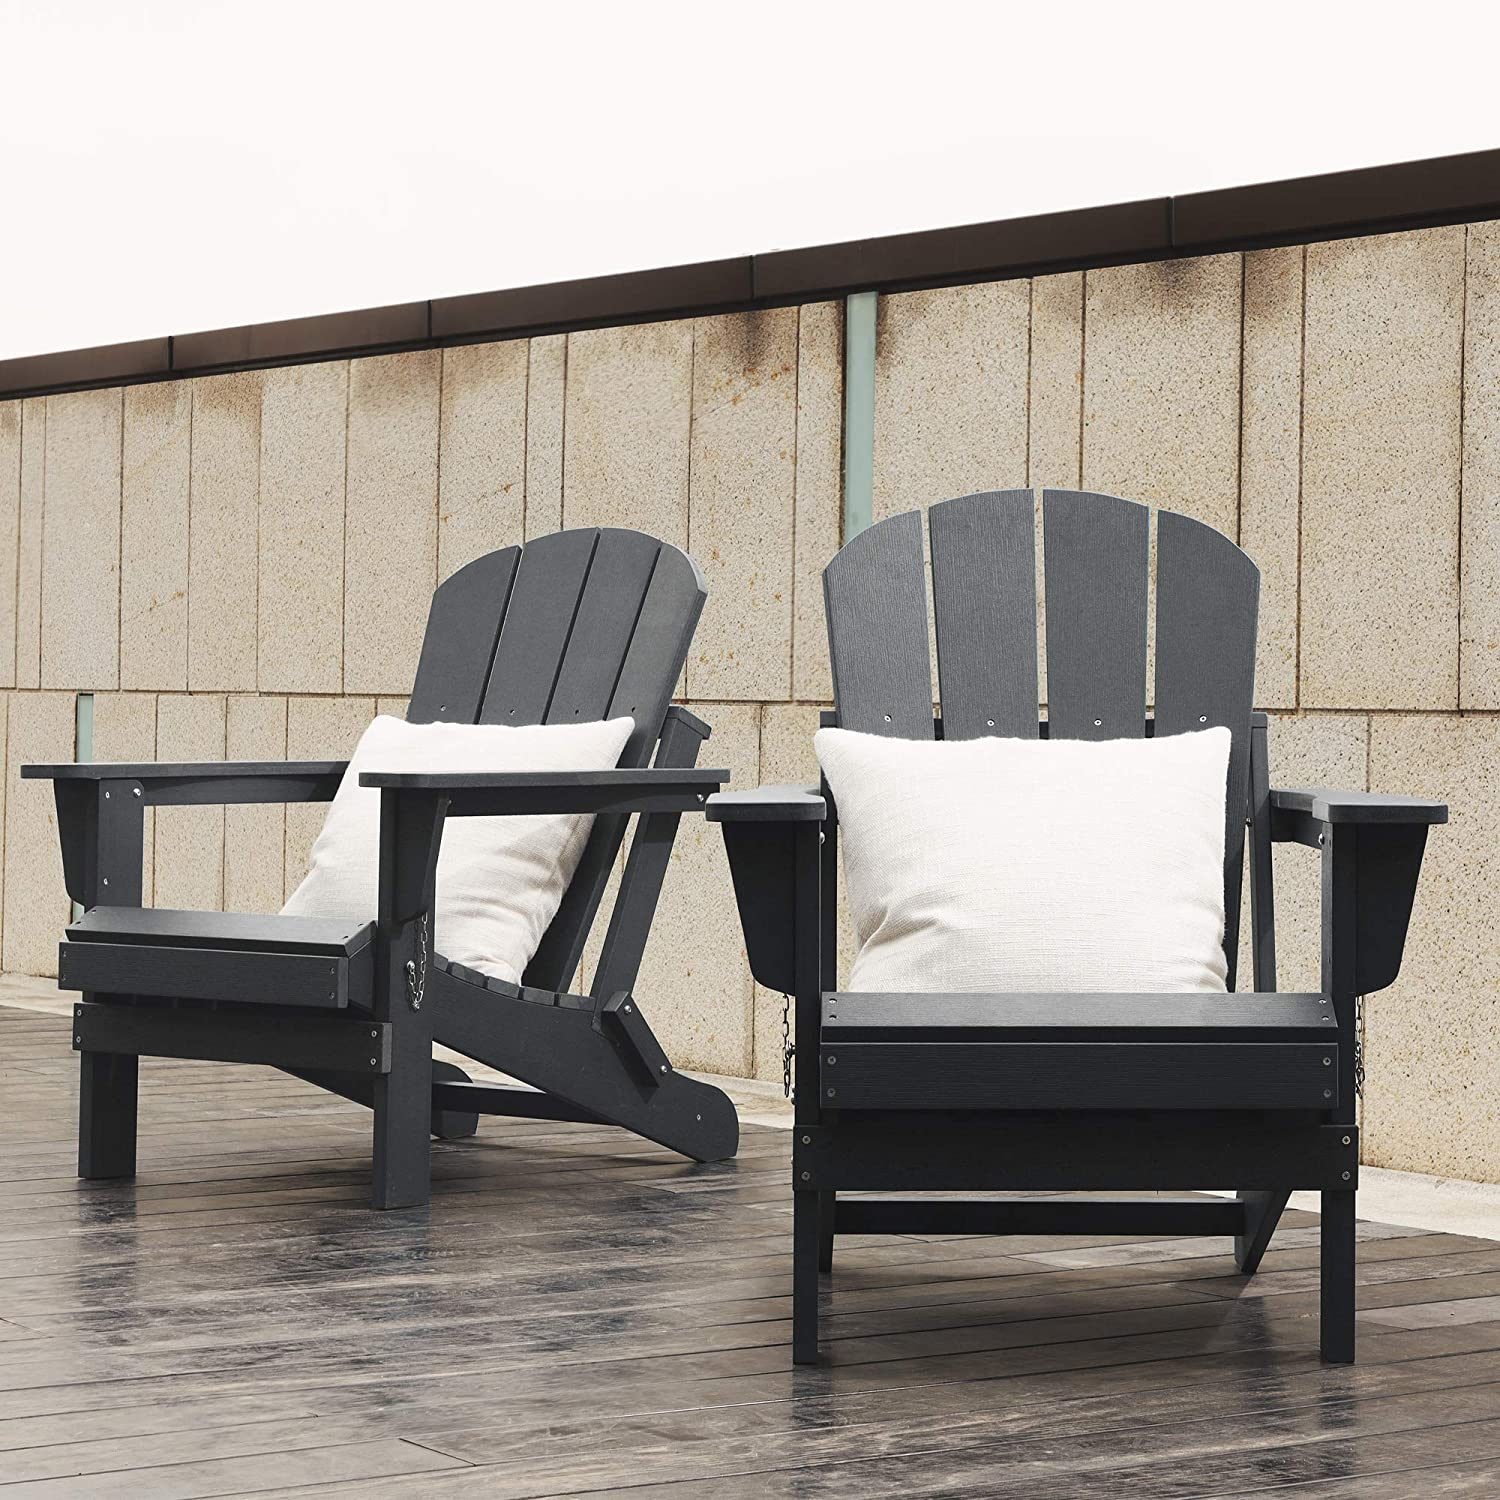 Best Adirondack Chairs for Your Outdoor Space